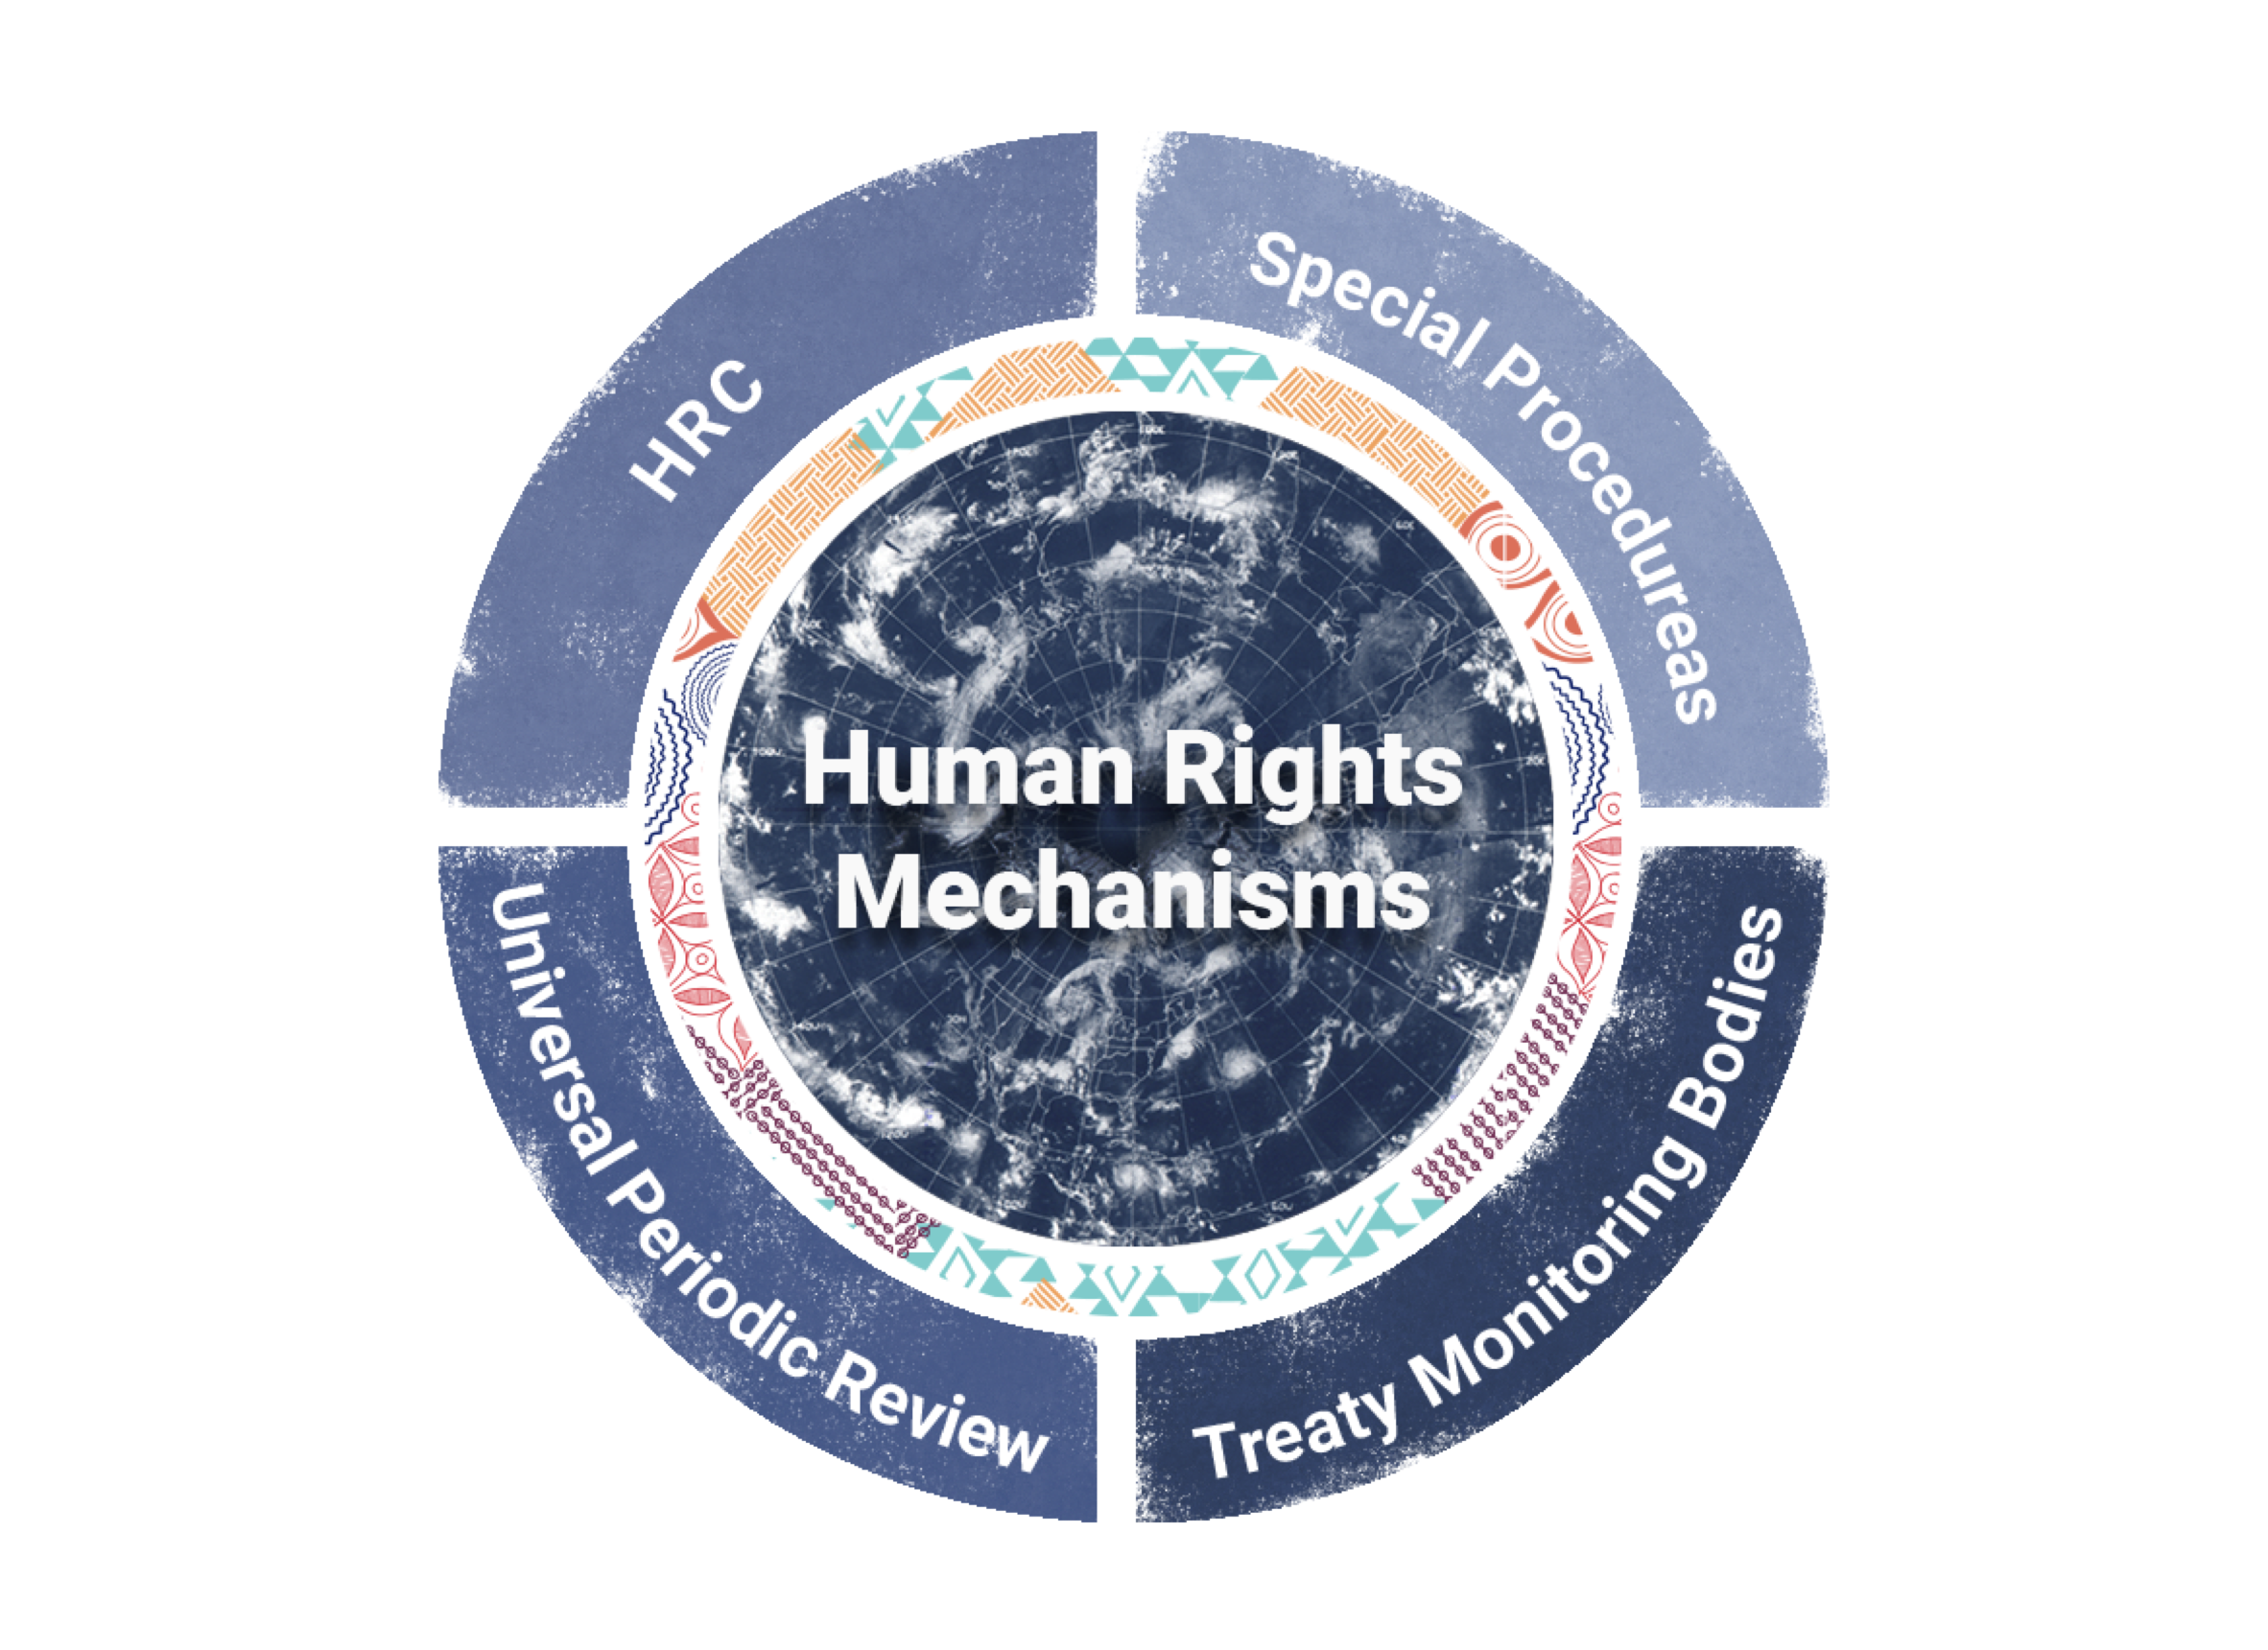 A diagram explaining the Human Rights Mechanisms at UN